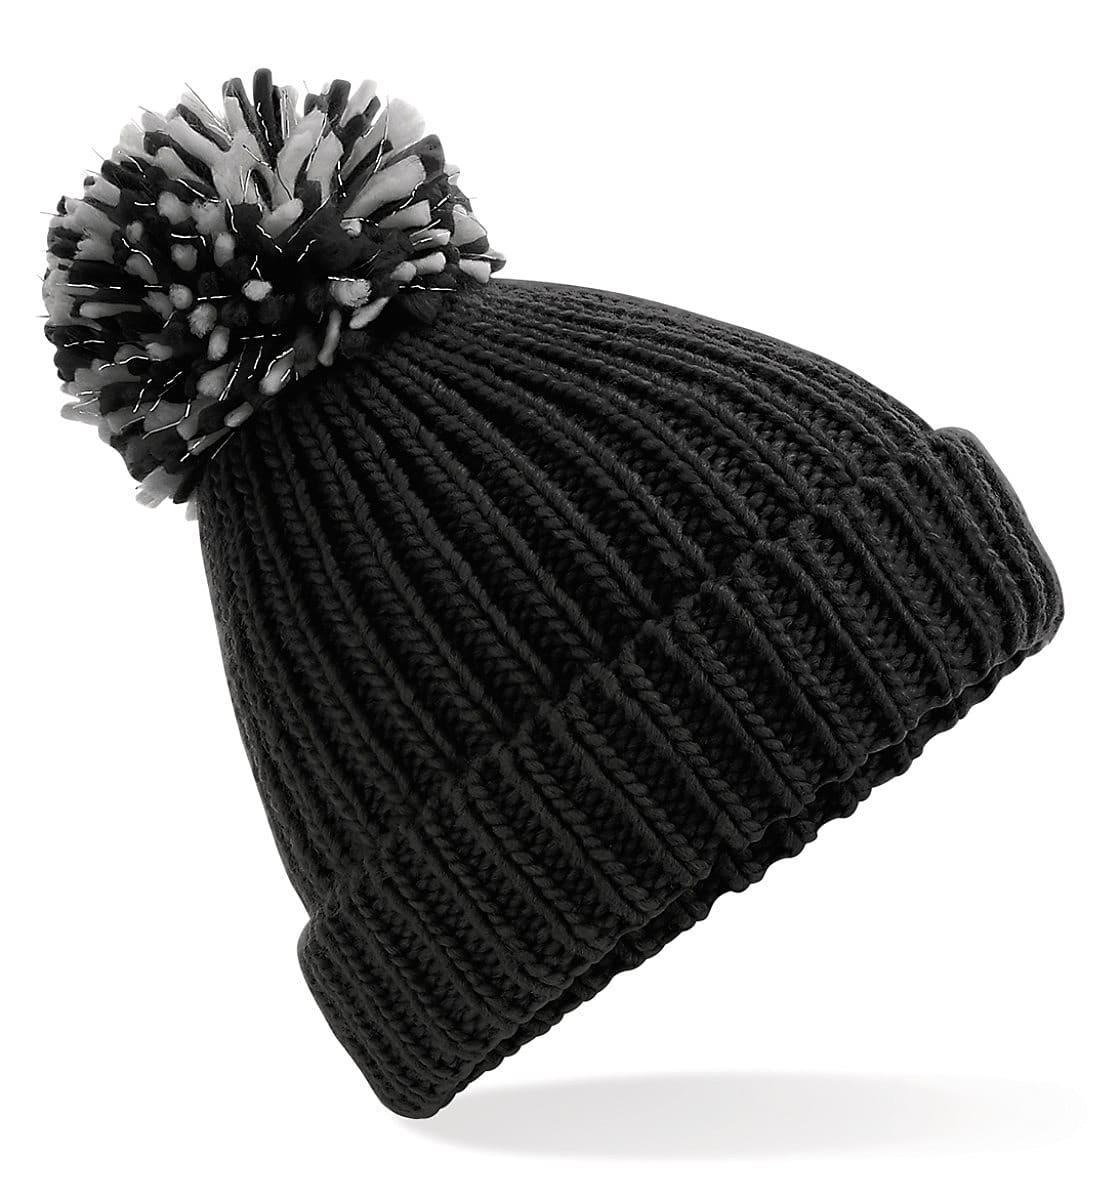 Beechfield Shimmer Pom Pom Beanie Hat in Black / Light Grey (Product Code: B409)